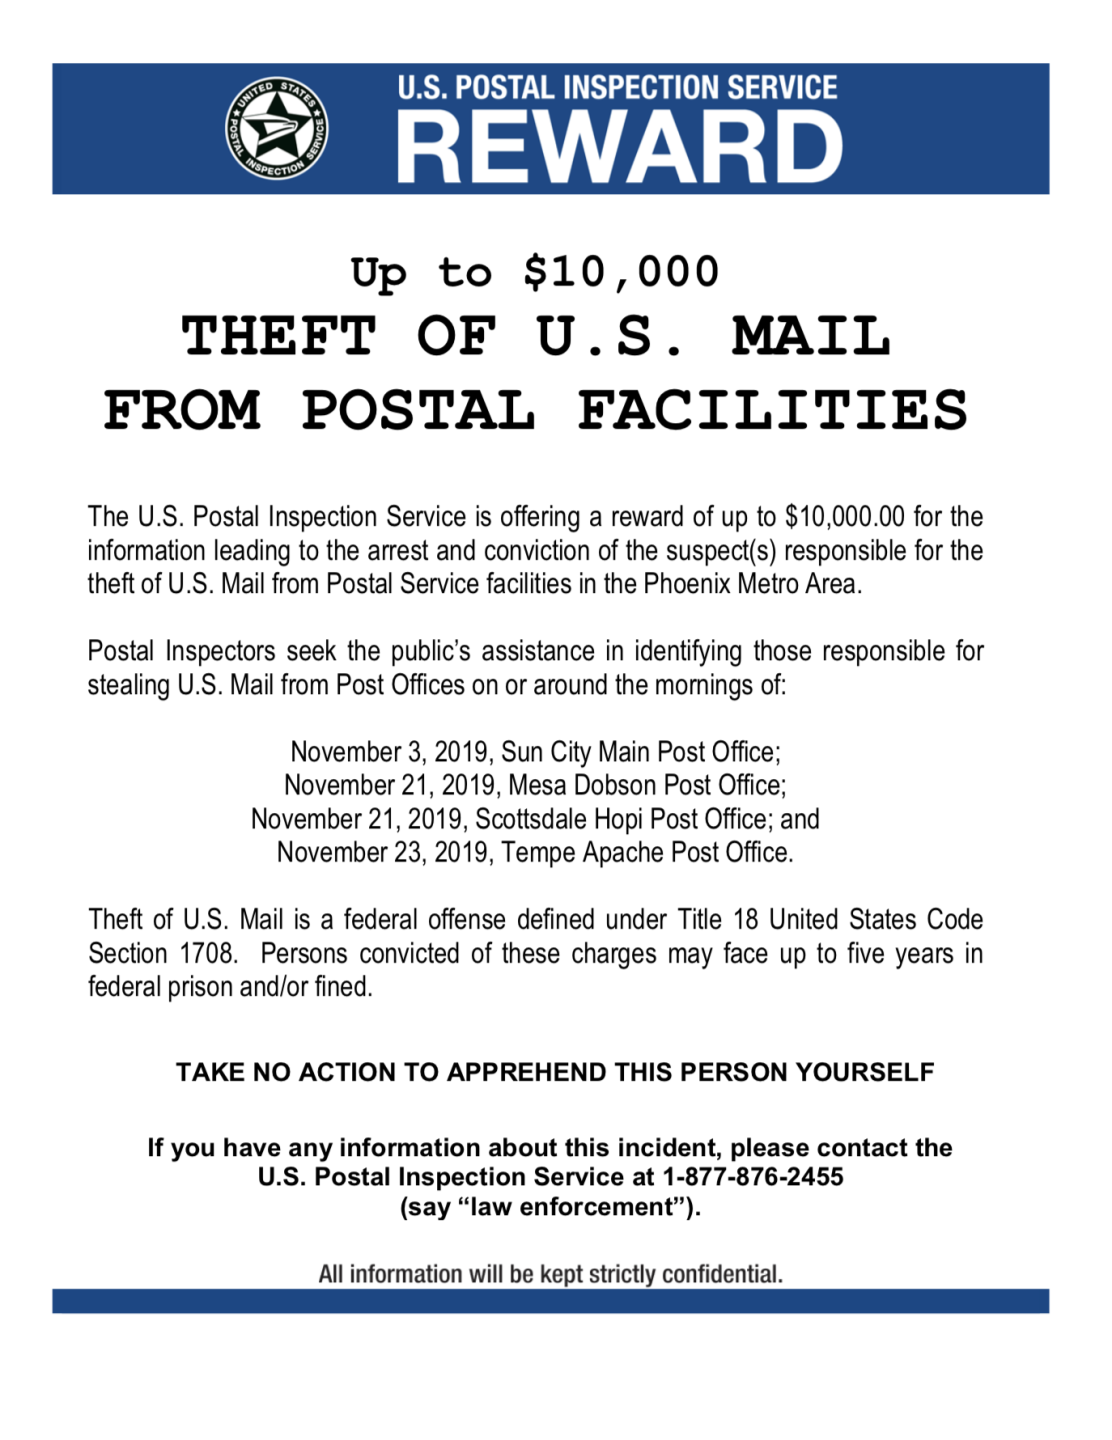 Post office theft flyer